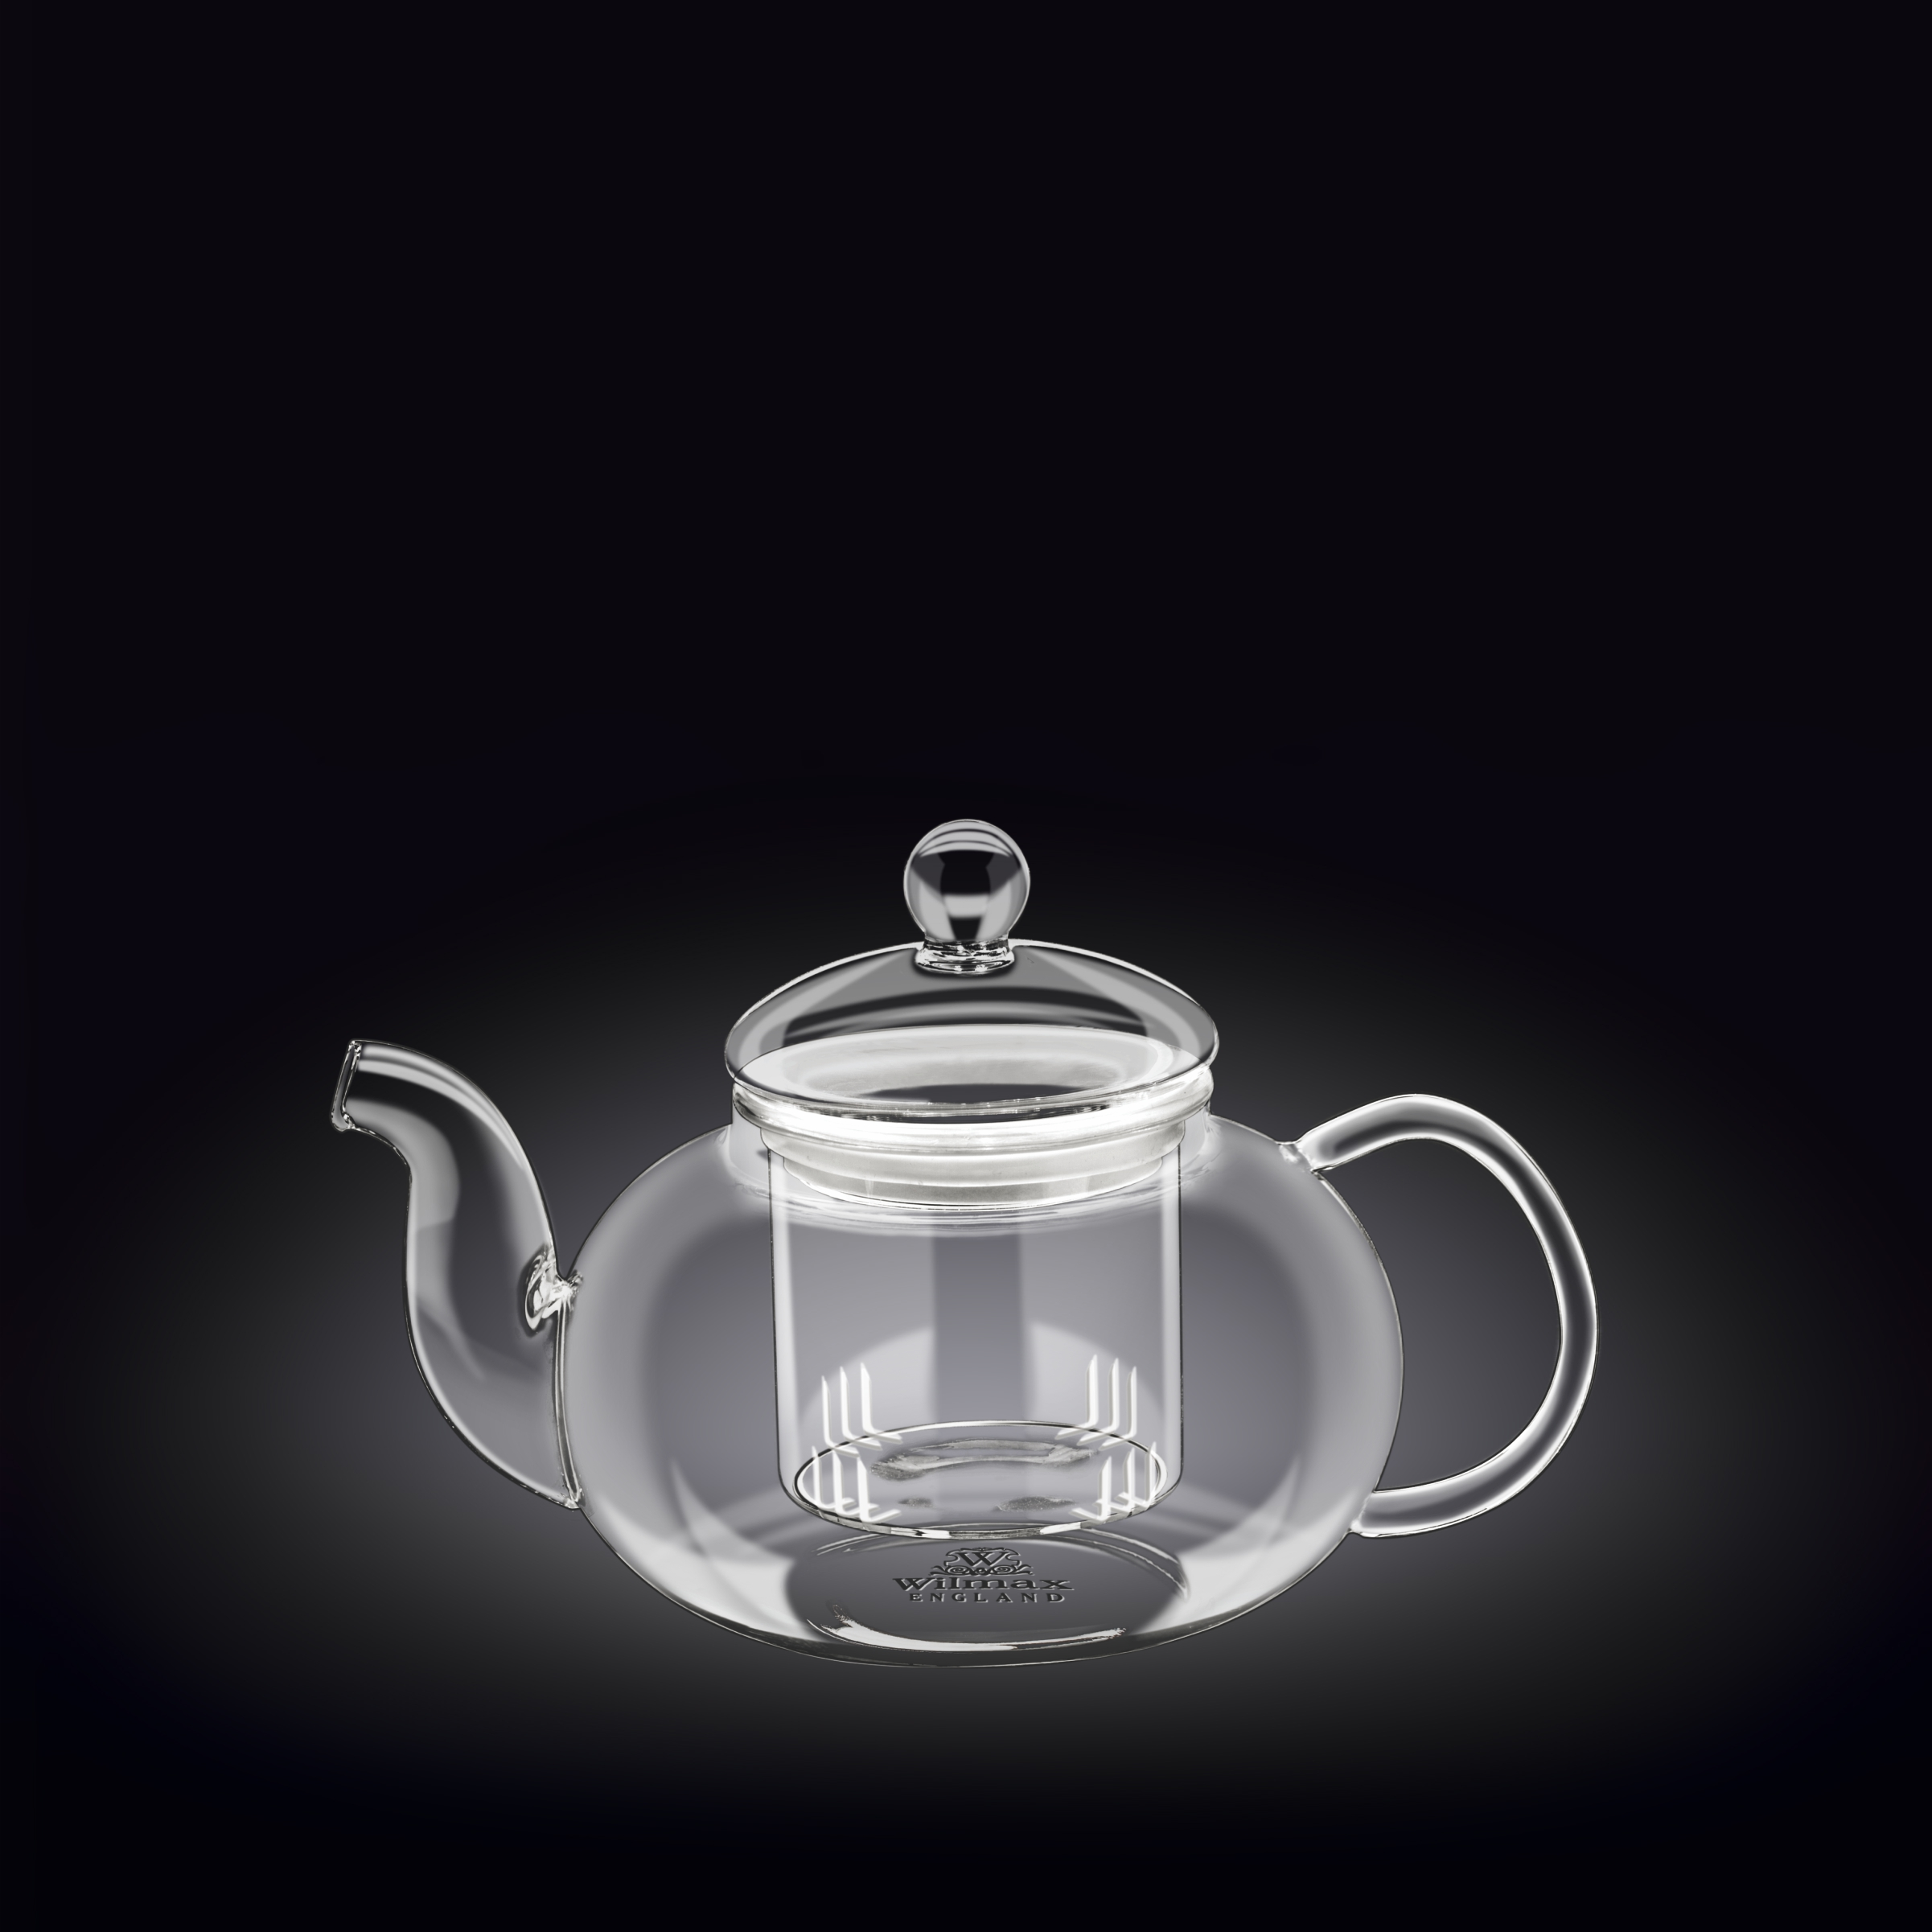 tea pot 20 fl oz  620 ml